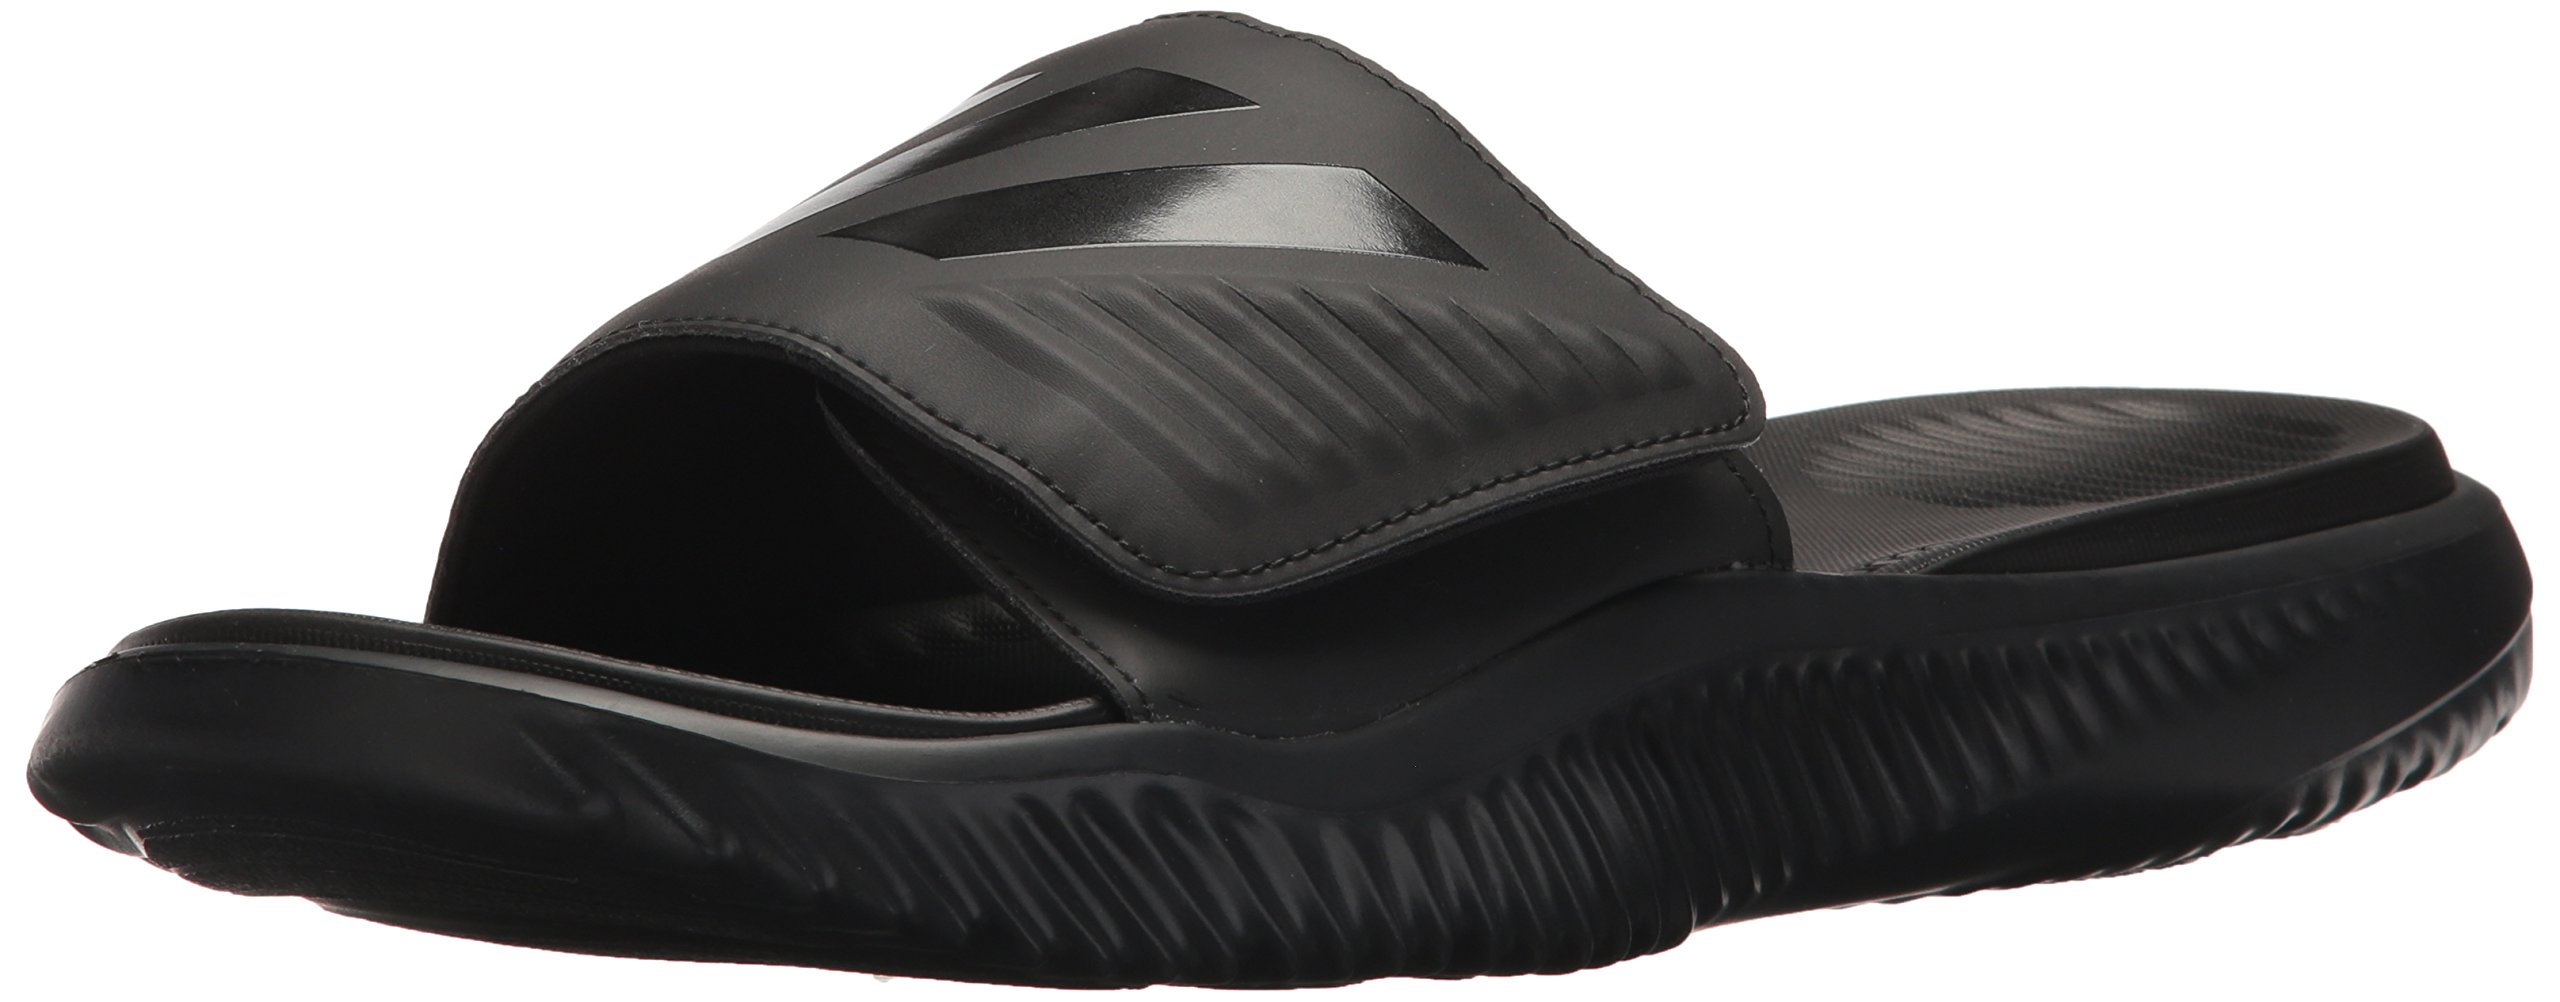 adidas Men's Alphabounce Slide Sport Sandal Black, 10 M US